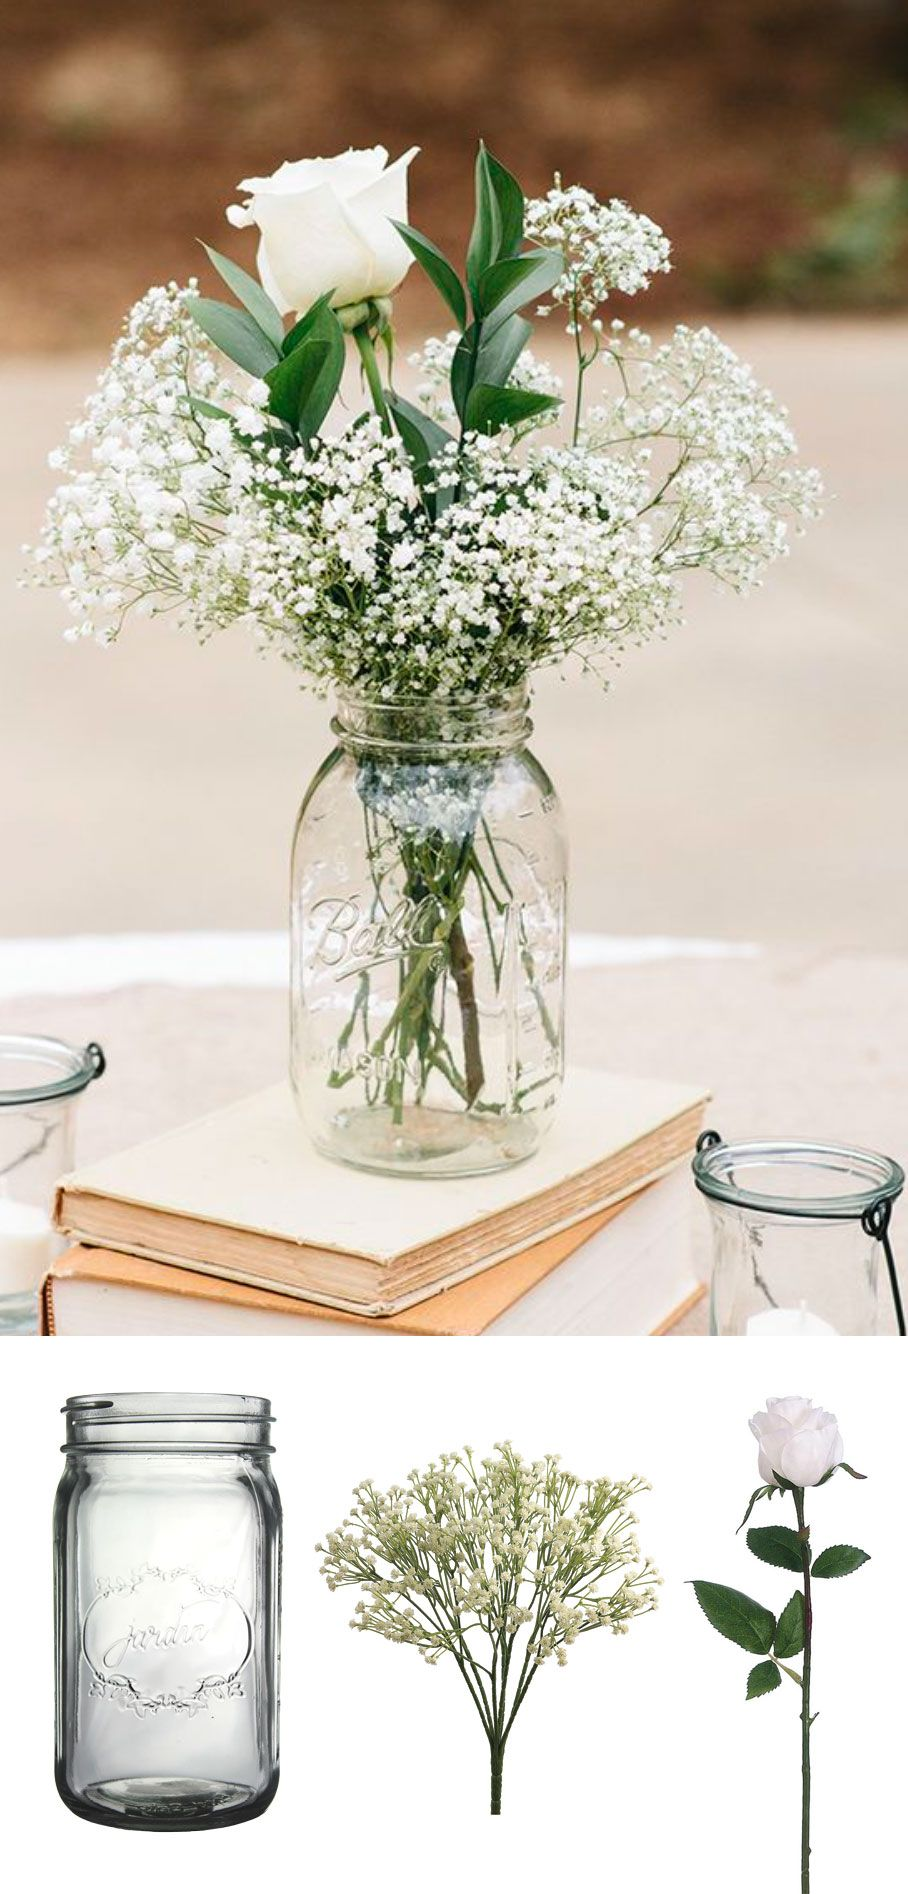 Make This Simple Diy Vintage Rustic Centerpiece With Mason Jars